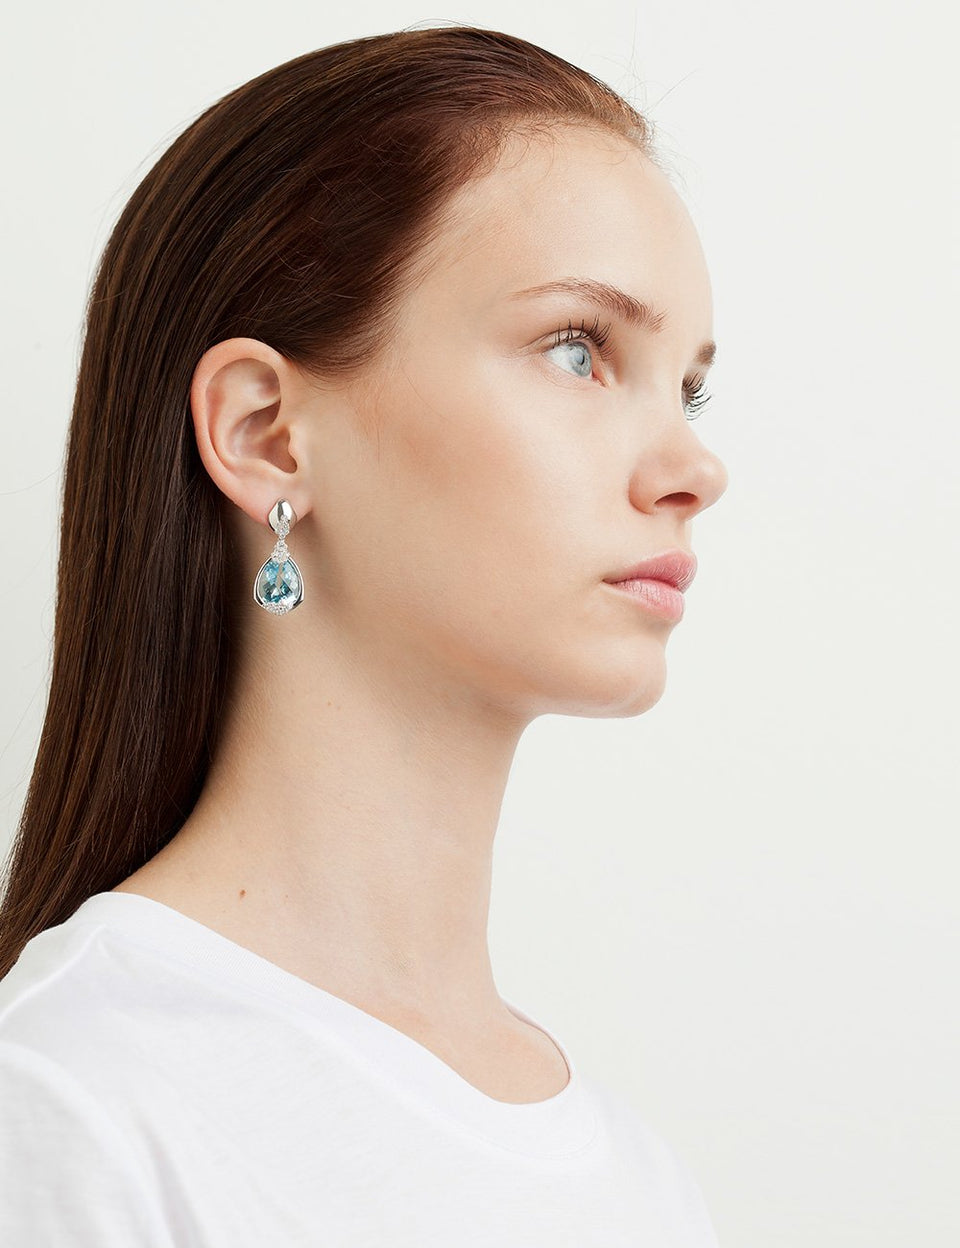 Roosik&Co - Blossom Earrings - White Gold, Topaz and Diamonds